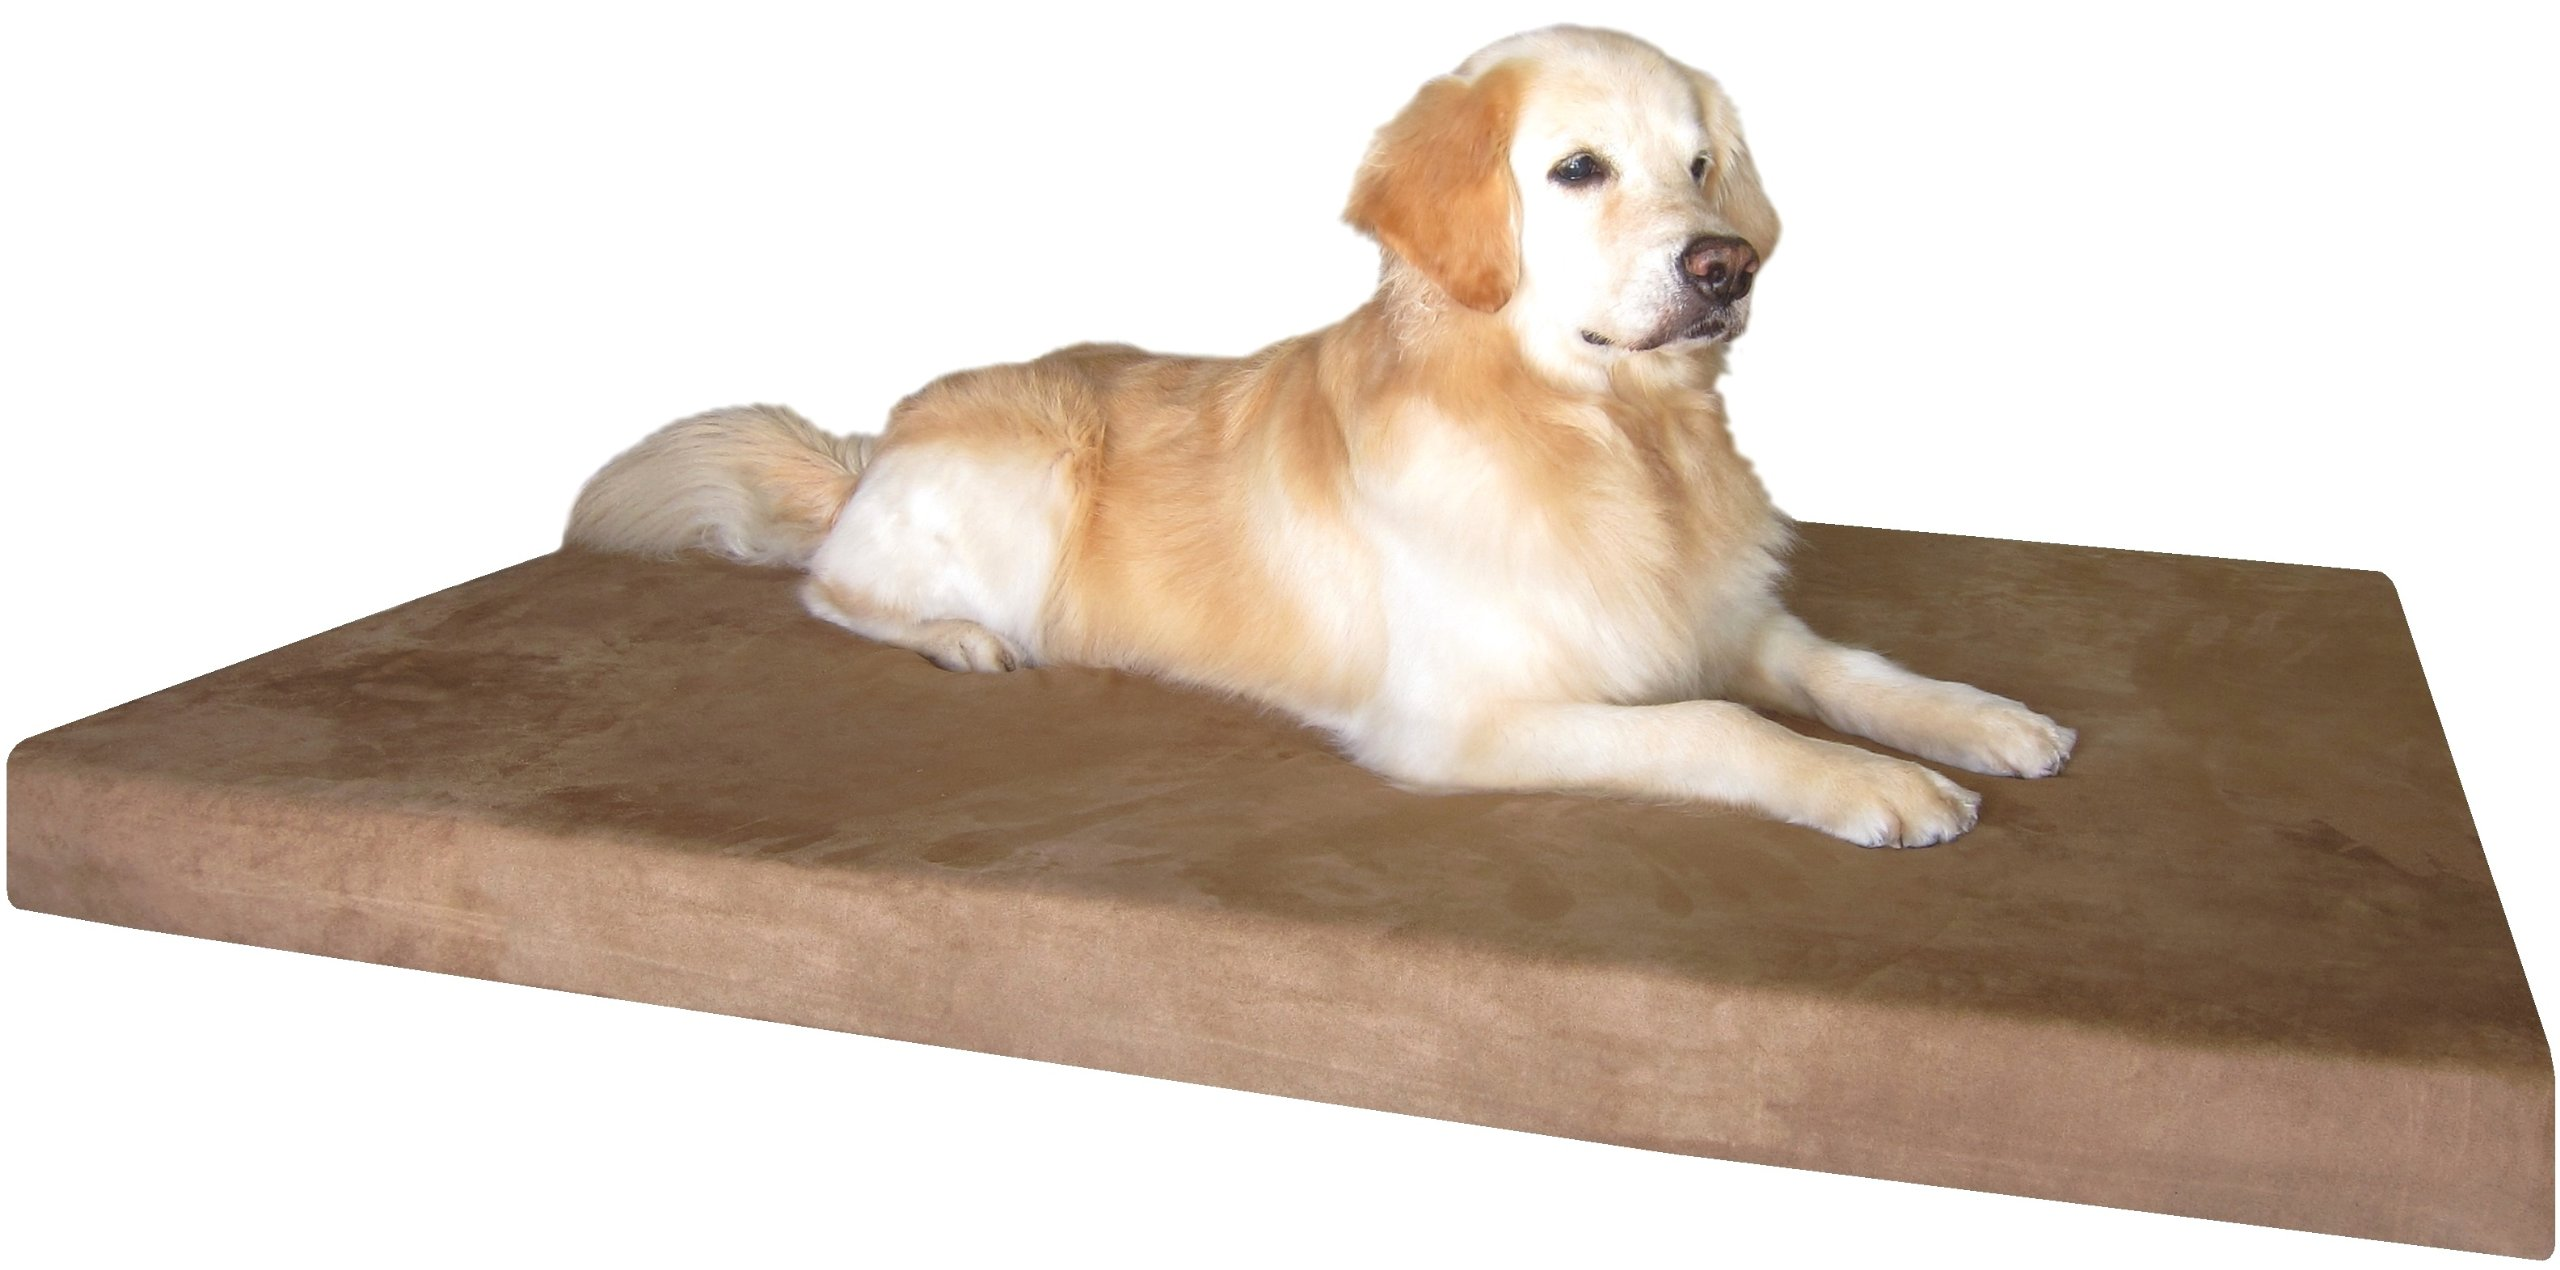 Dogbed4less XXL Large Orthopedic Cool Memory Foam Dog Bed in Brown Color, Waterproof Liner and Extra Pet Bed Cover, 55X37X4 Inches